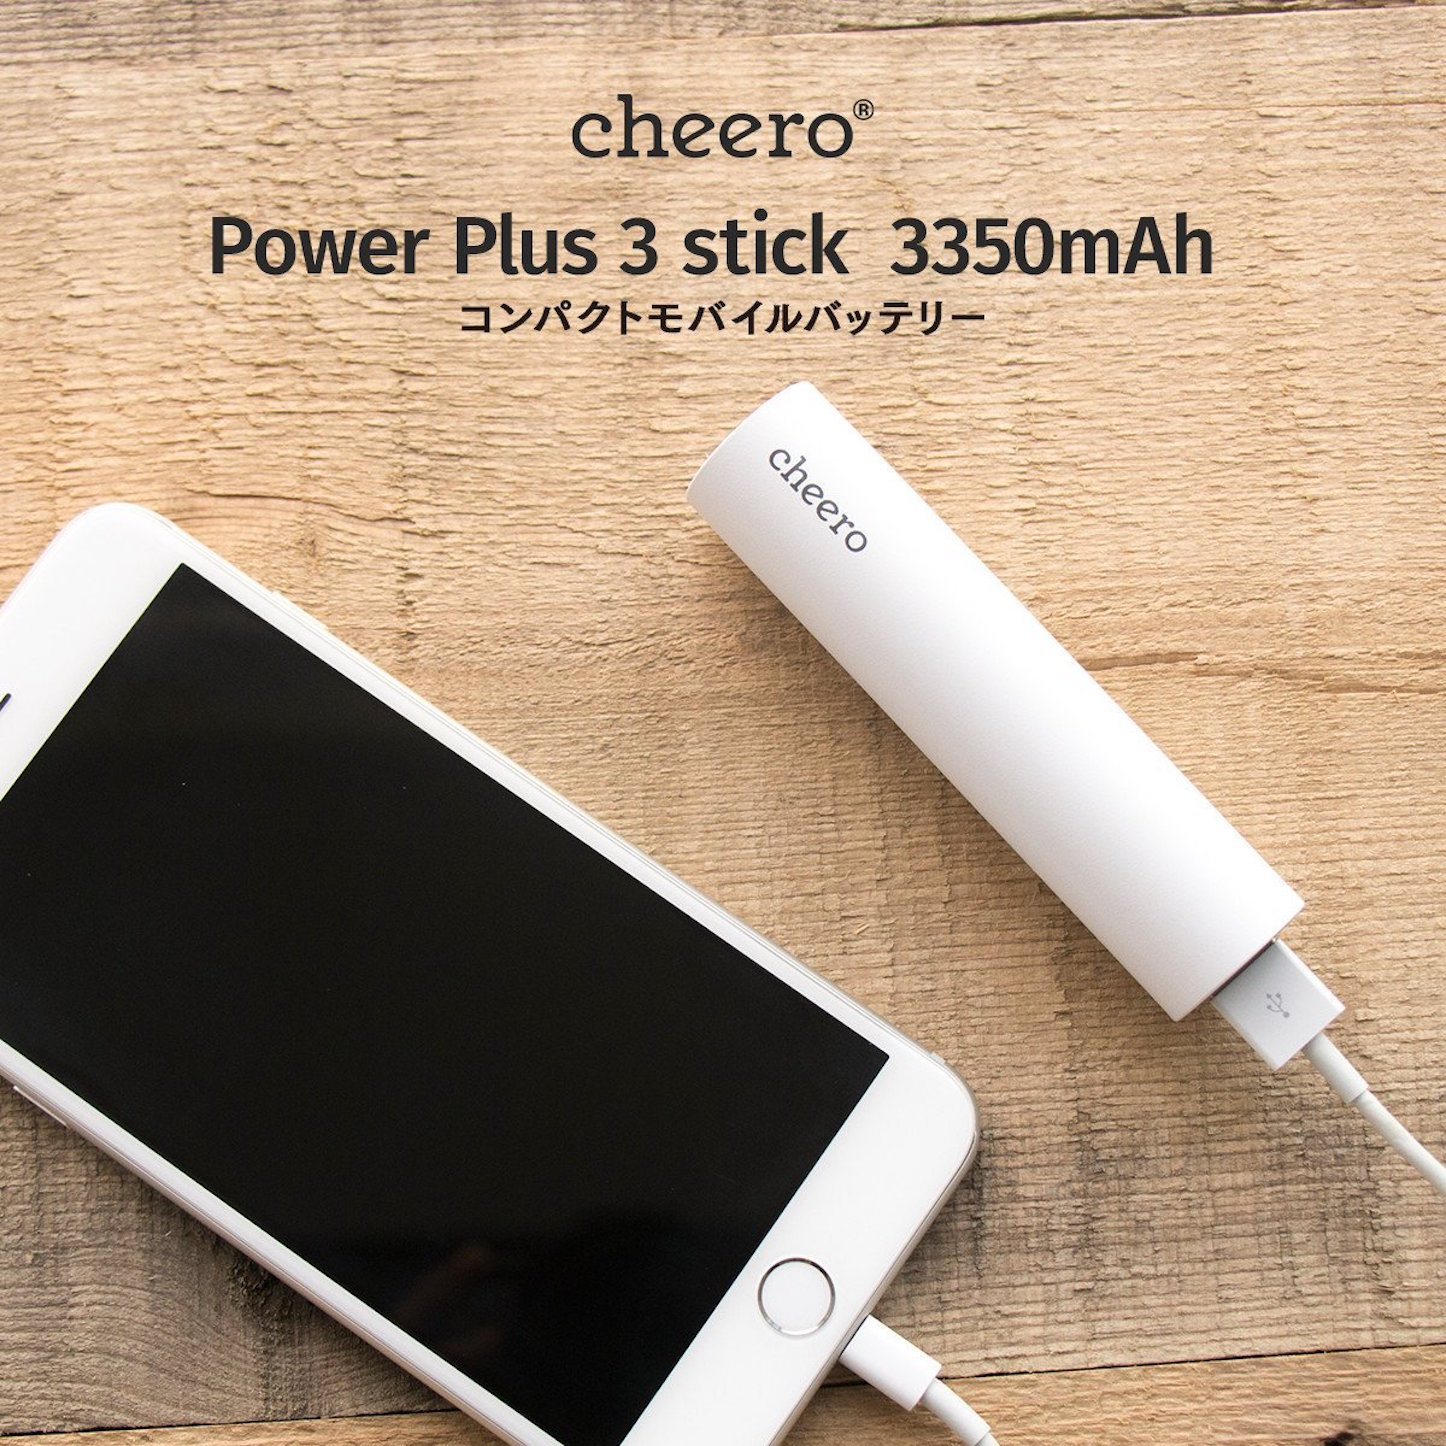 Cheero Power Plus 3 Stick 3350mAh